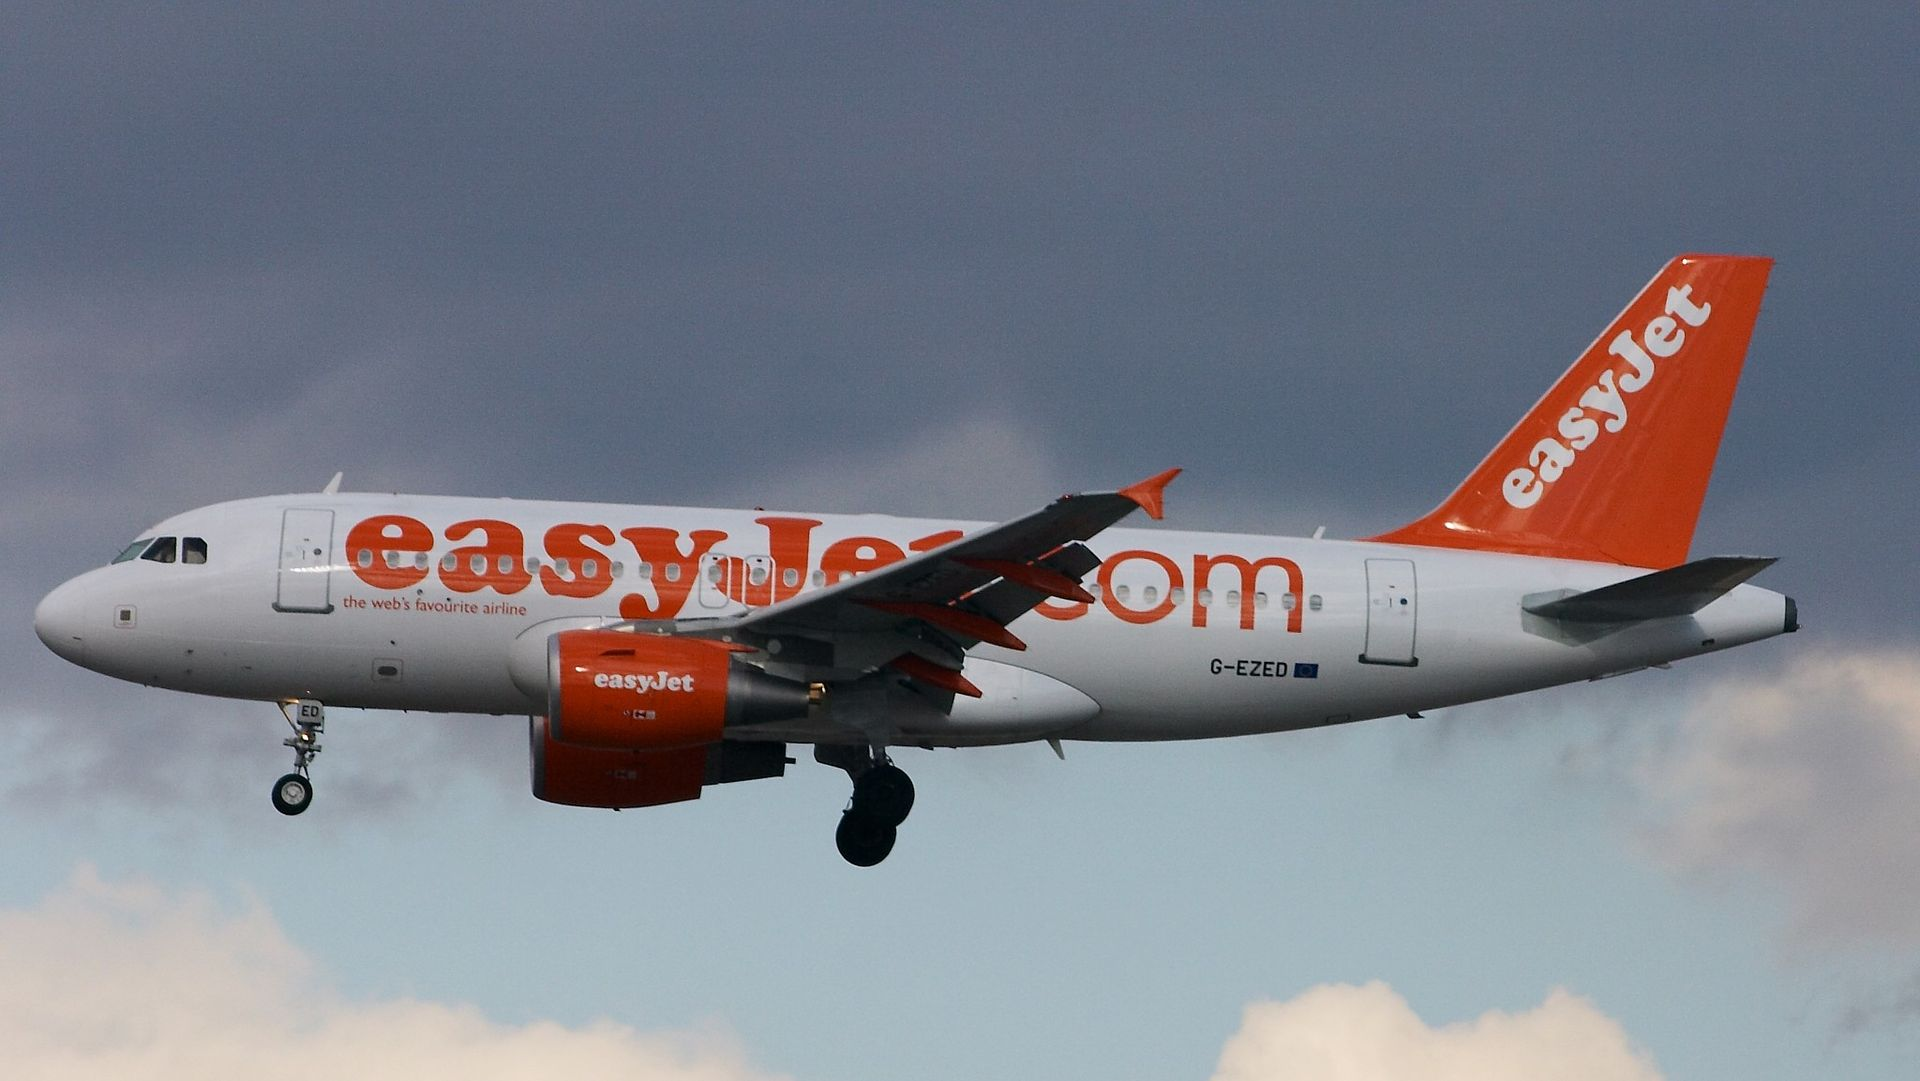 easyjet airline company limited essay Since 1995, easyjet airline company limited is a great and successful illustration of a european air hose the president stelios haji-loannou ( greek ) founded the company this twelvemonth.